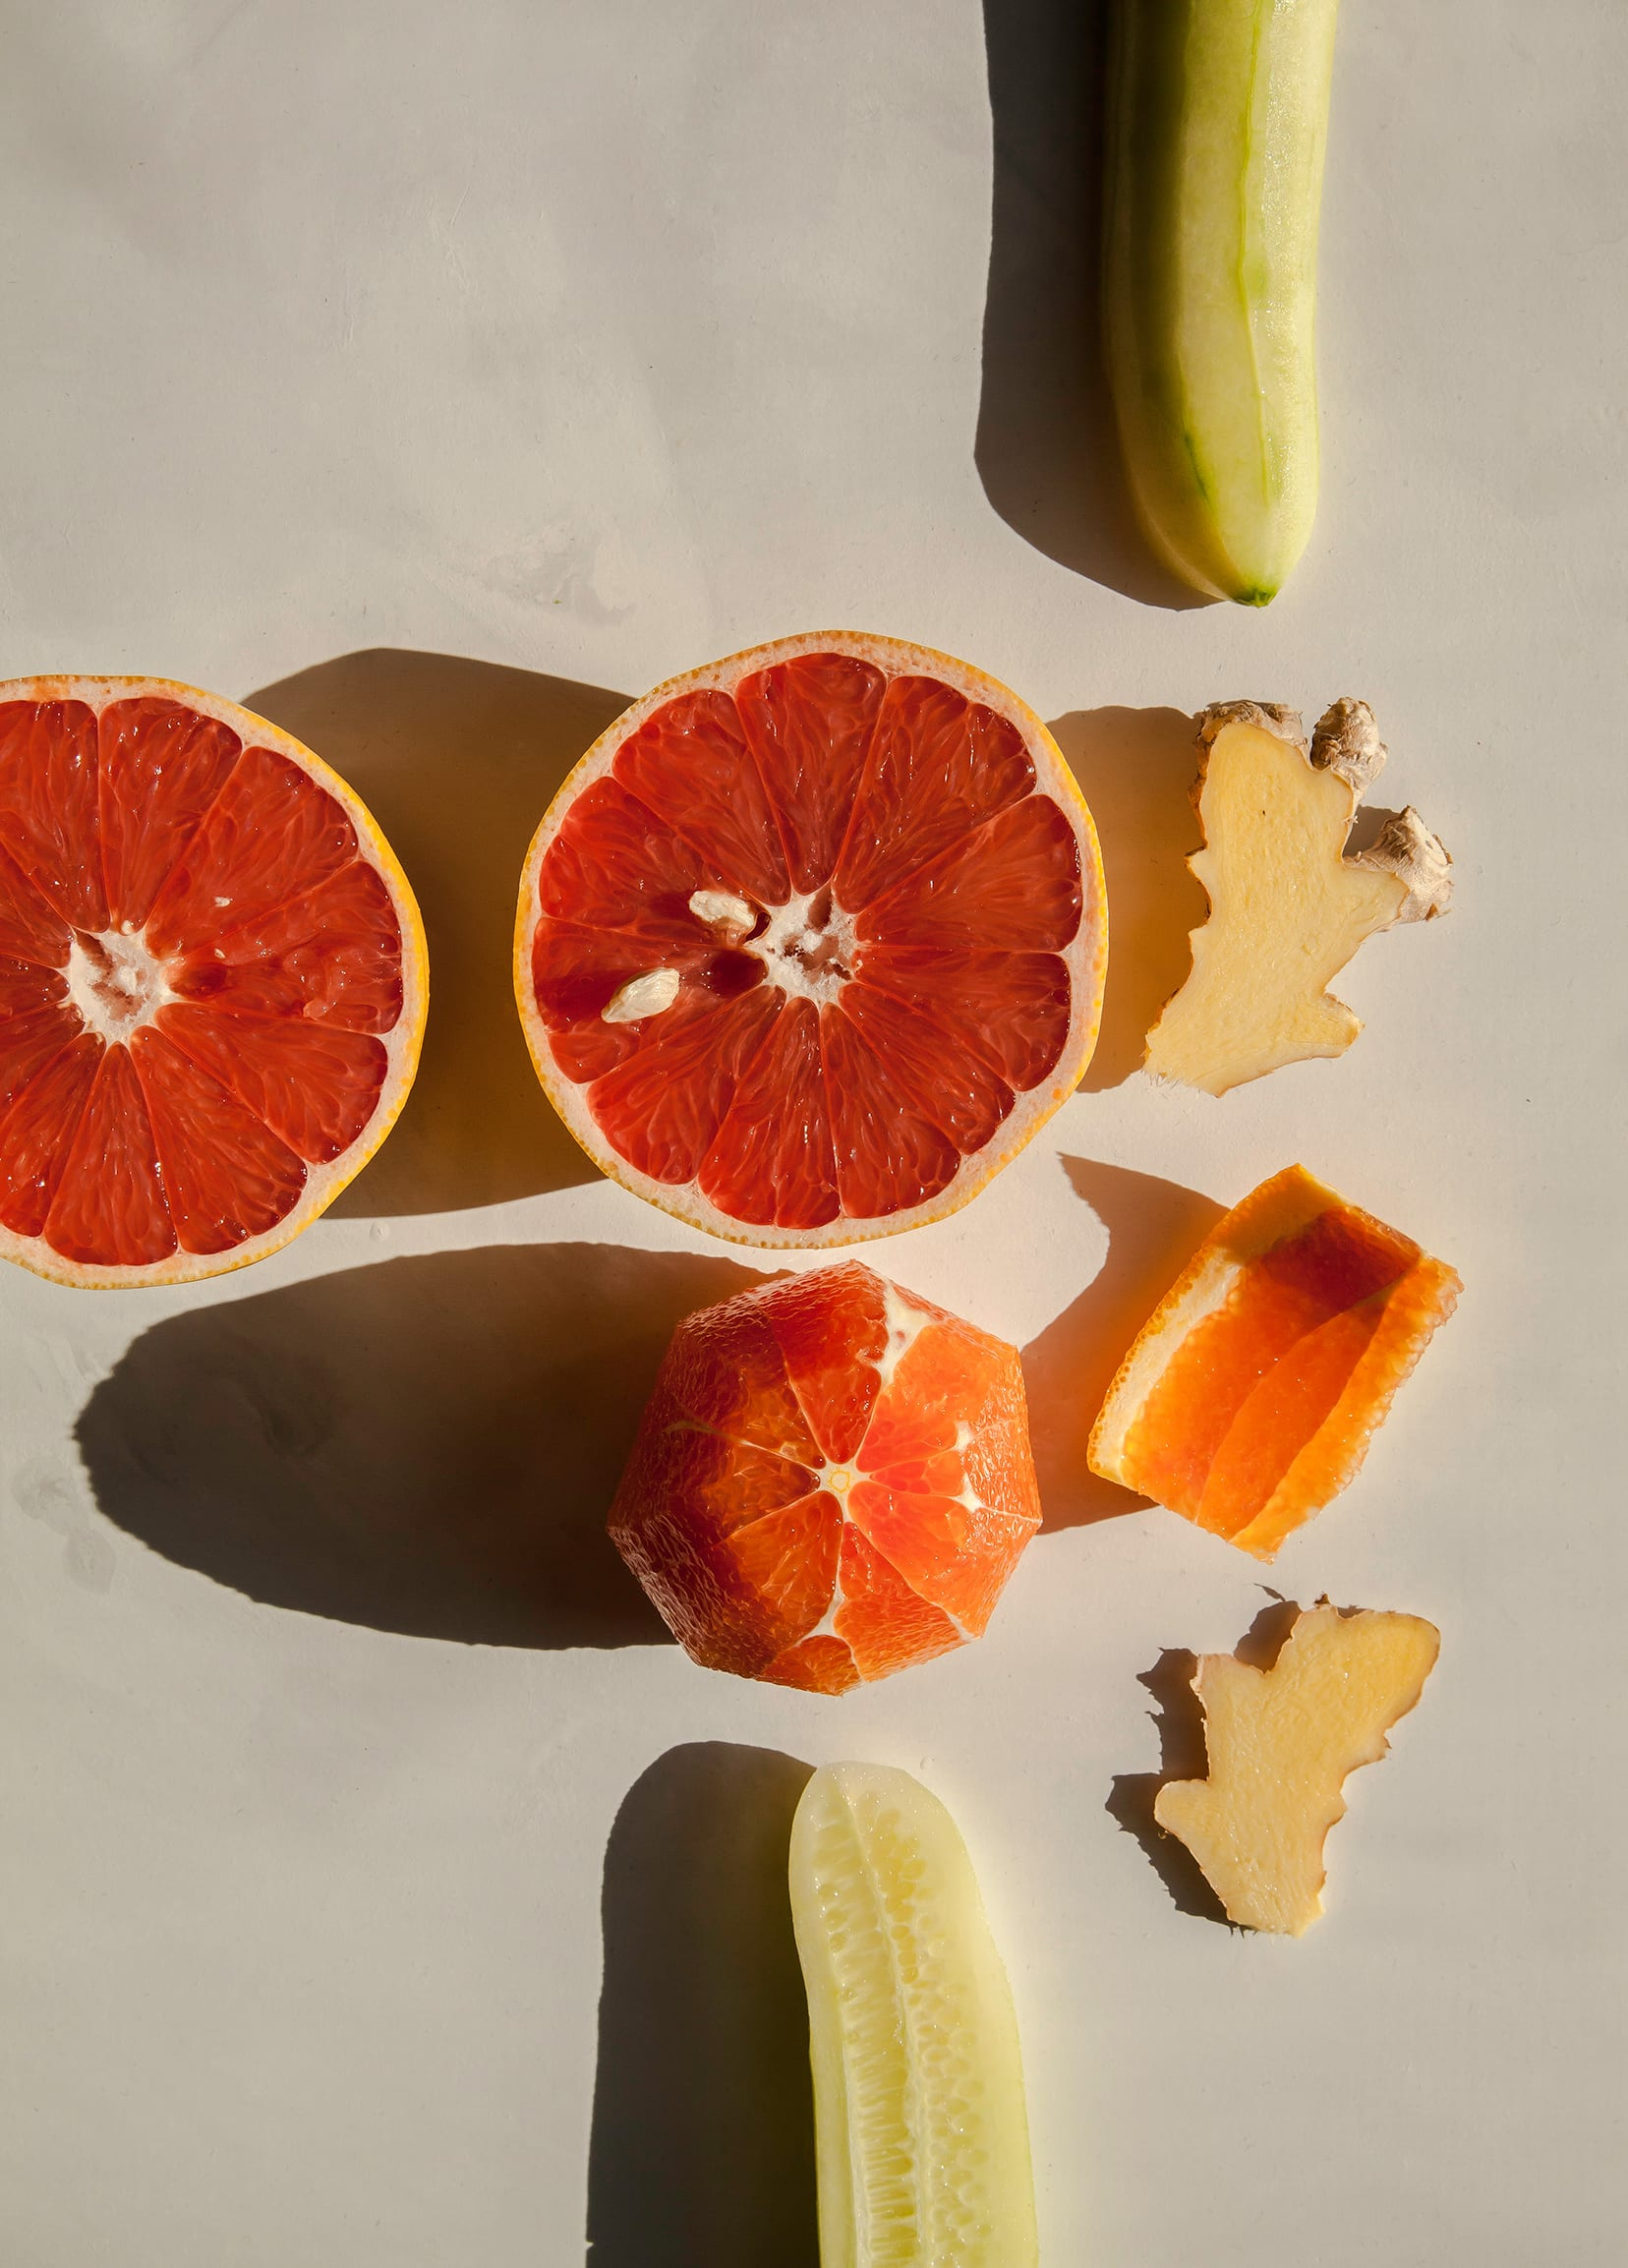 Over head shot of a halved grapefruit, peeled cucumber, orange, and sliced ginger in direct sunlight.